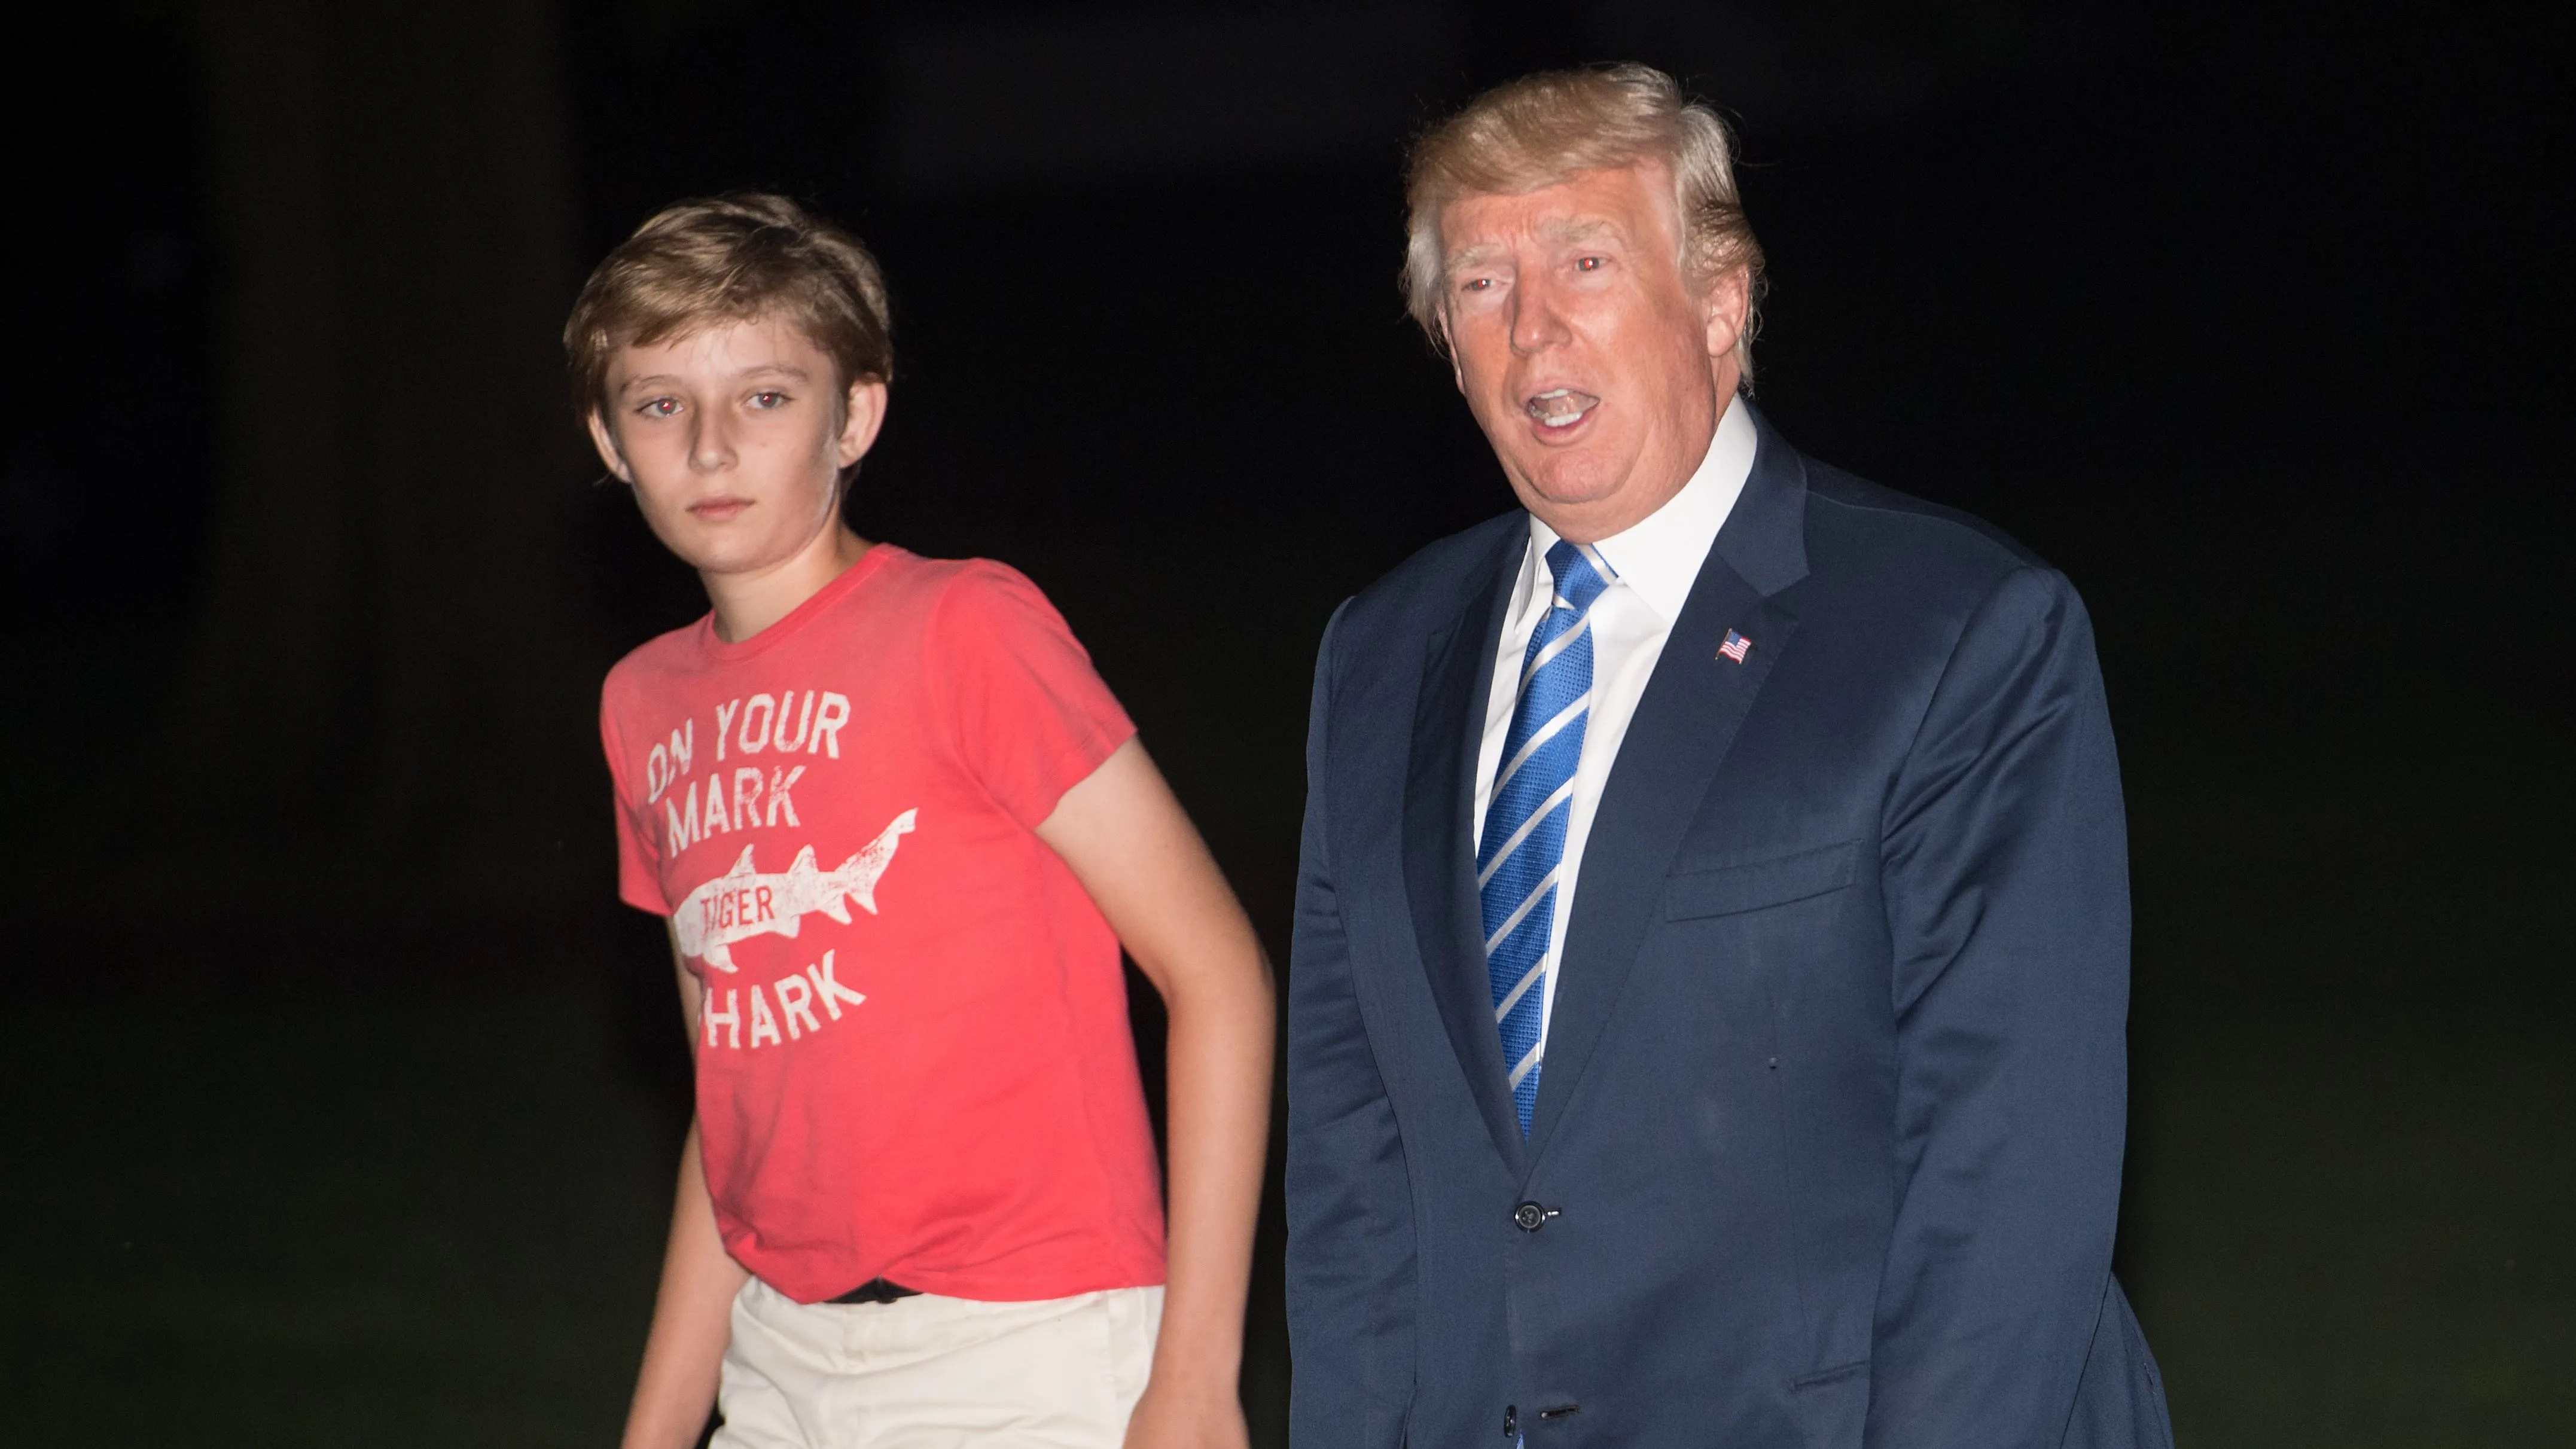 the chair outlet large armless slipcover barron trump should be allowed to wear whatever he wants   gq